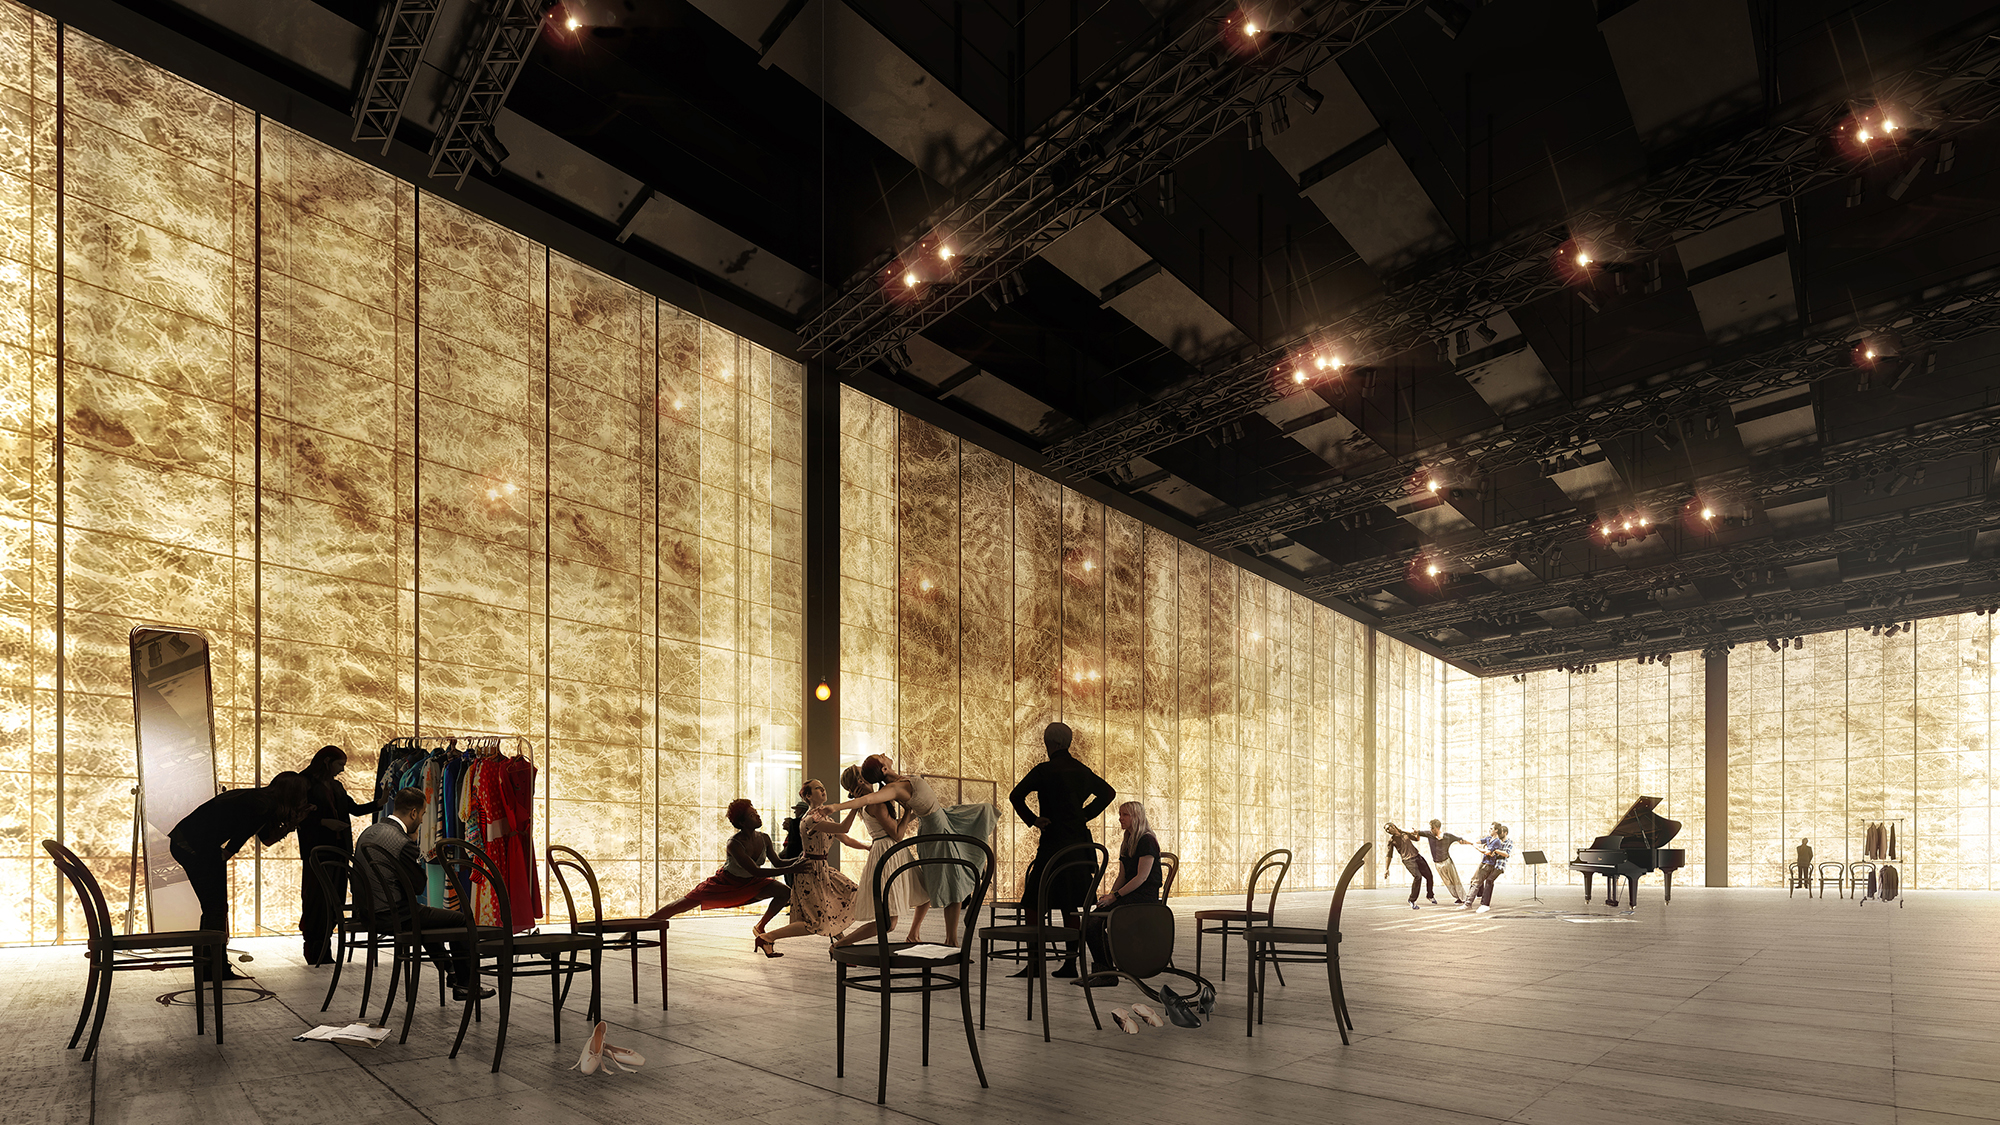 Rendering of the rehearsal space at the Ronald O. Perelman Performing Arts Center at the World Trade Center